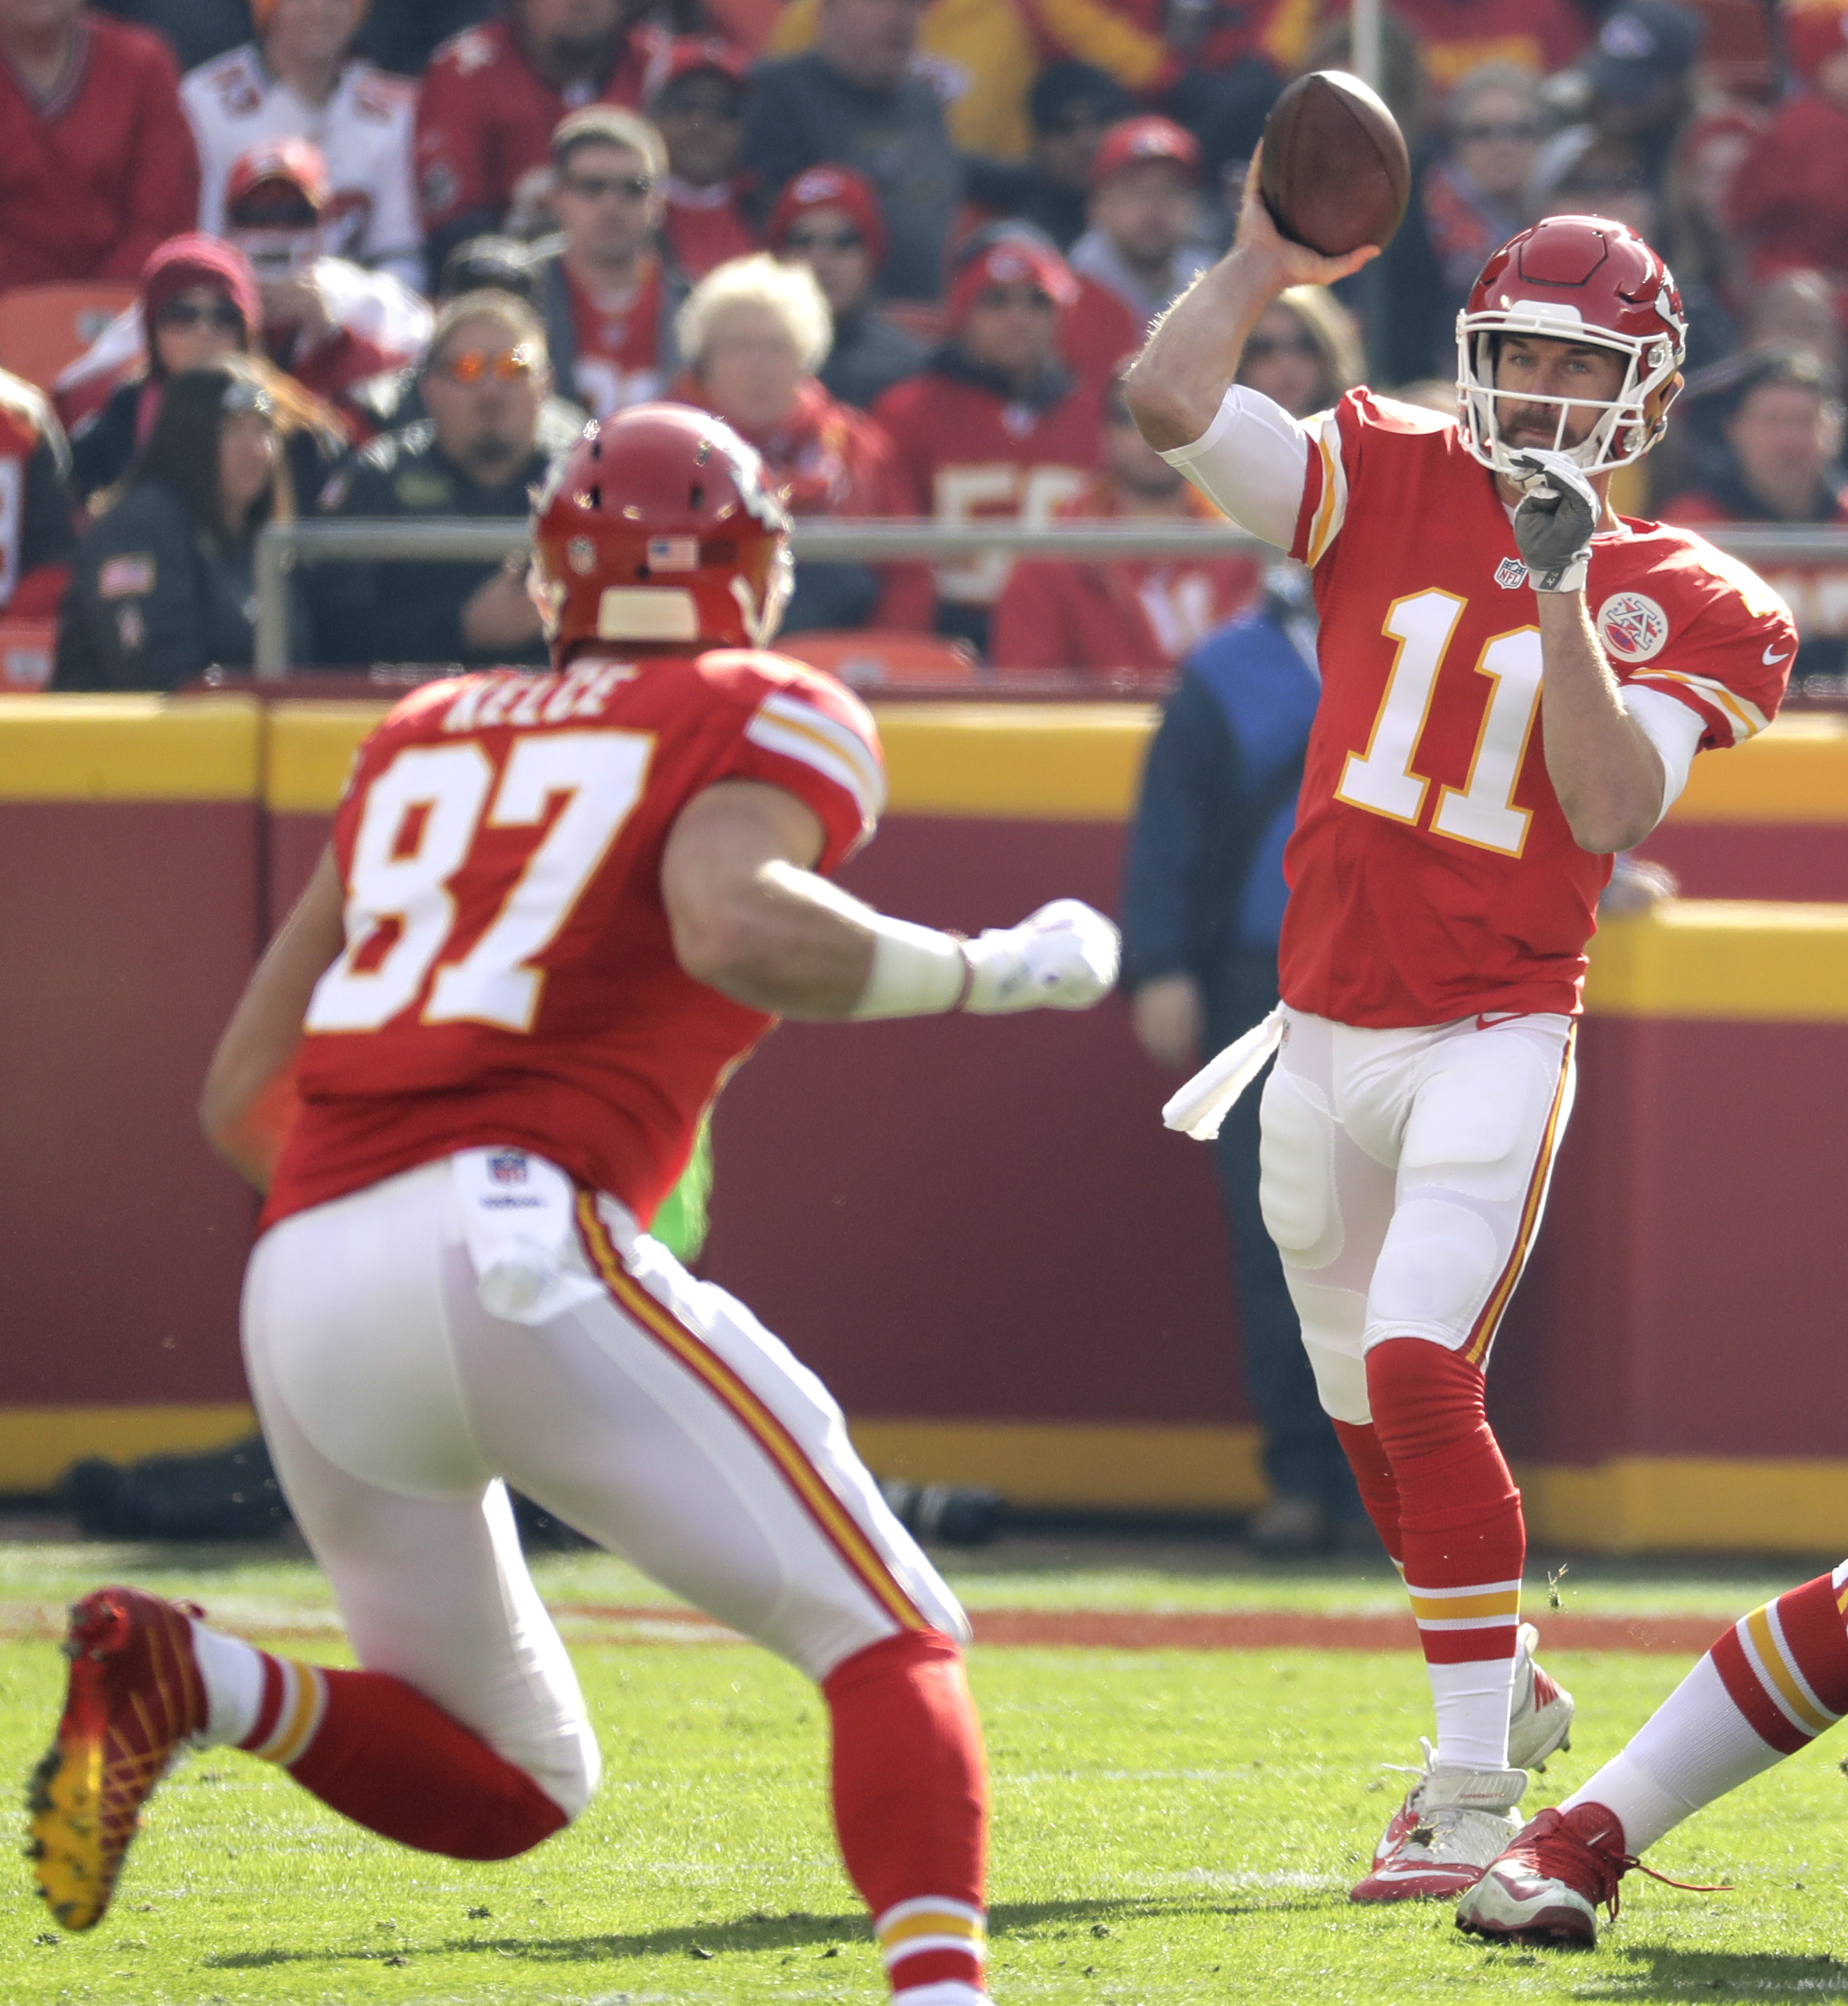 Kansas City Chiefs quarterback Alex Smith (11) throws to tight end Travis Kelce (87) during the first half of an NFL football game against the Tampa Bay Buccaneers in Kansas City, Mo., Sunday, Nov. 20, 2016. (AP Photo/Charlie Riedel)